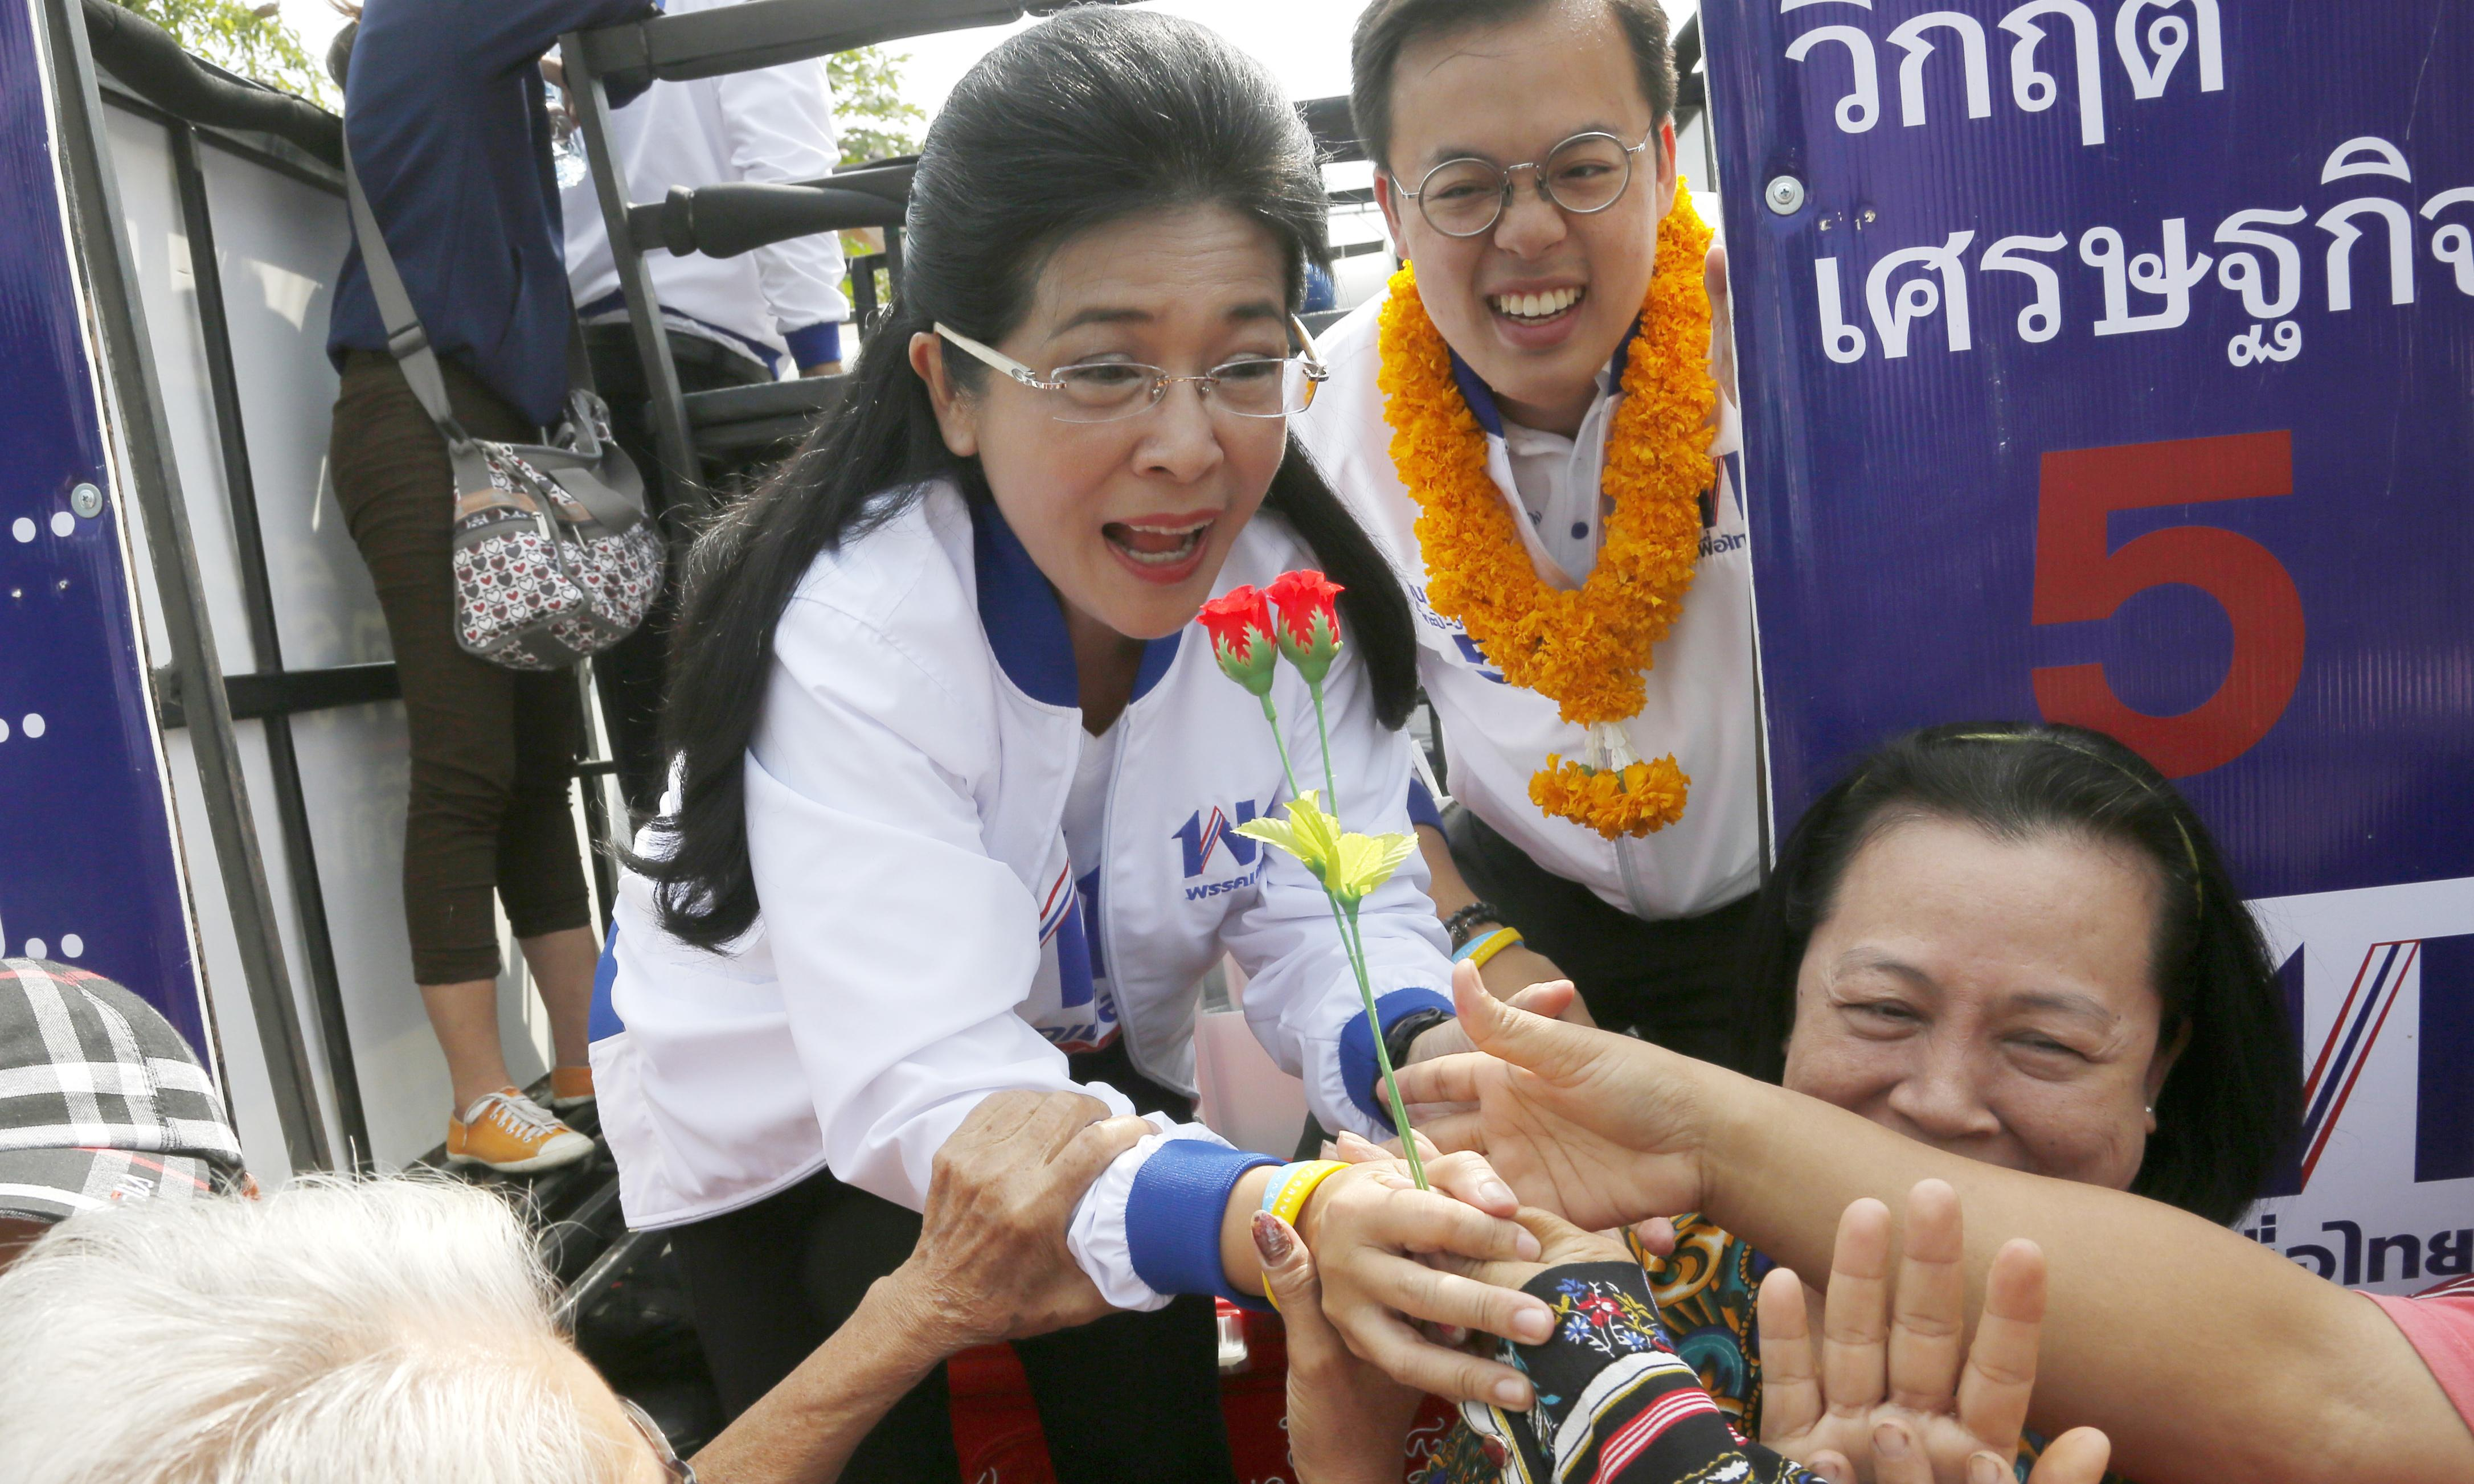 Thailand election: everything you need to know about Sunday's vote